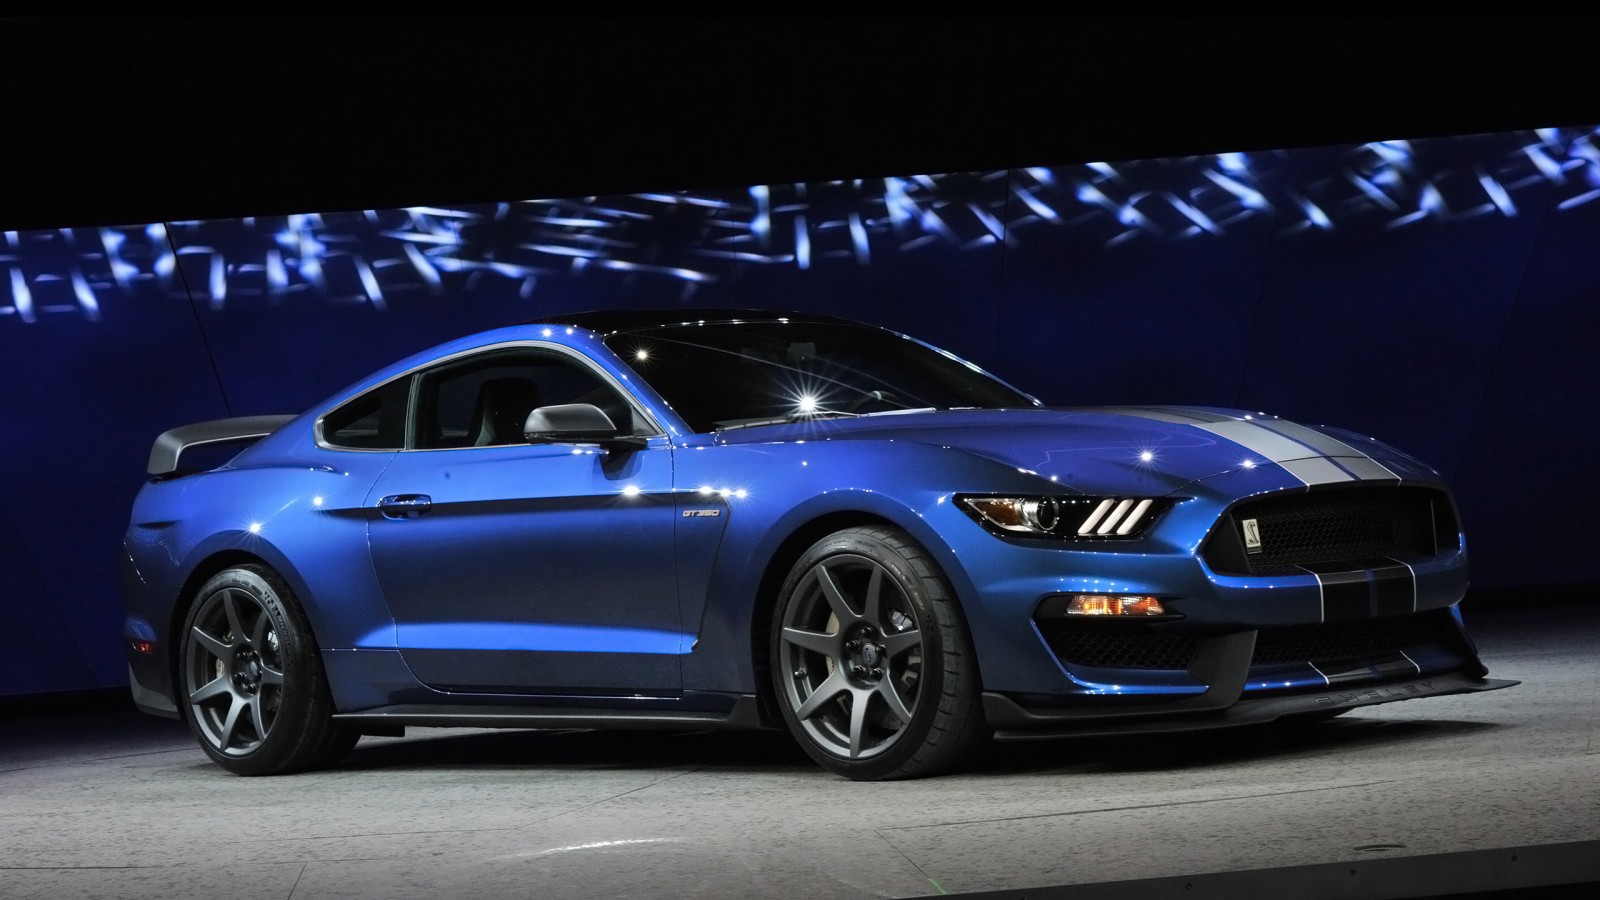 2016 ford shelby gt350r mustang 2 wallpaper hd car - Mustang shelby ...